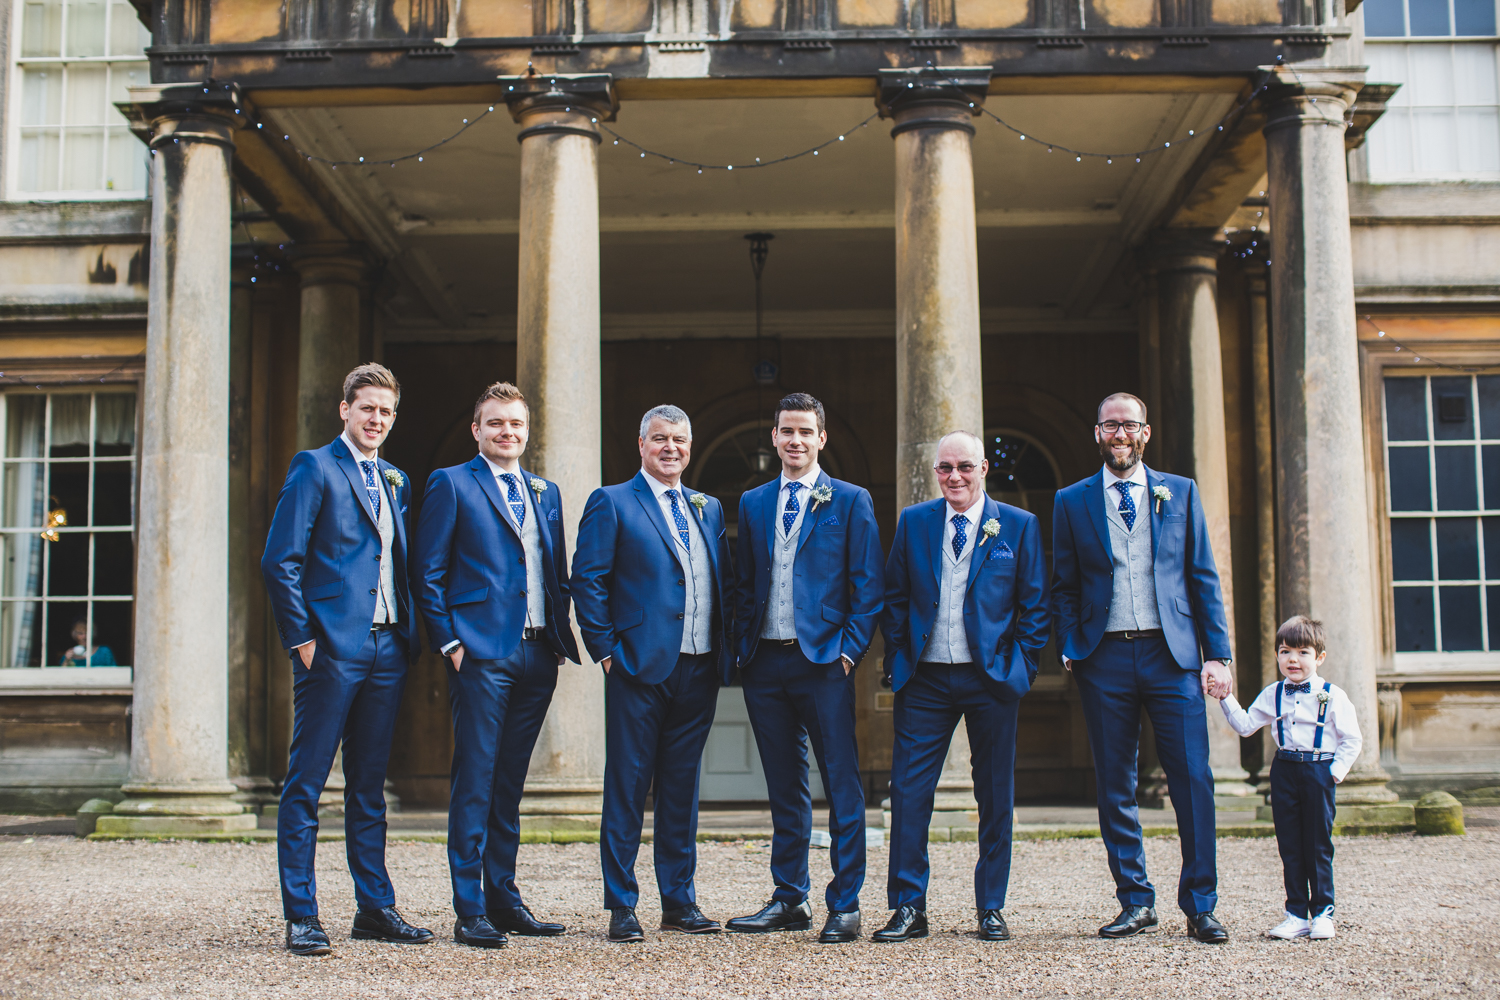 prestwold hall wedding photography-7.jpg